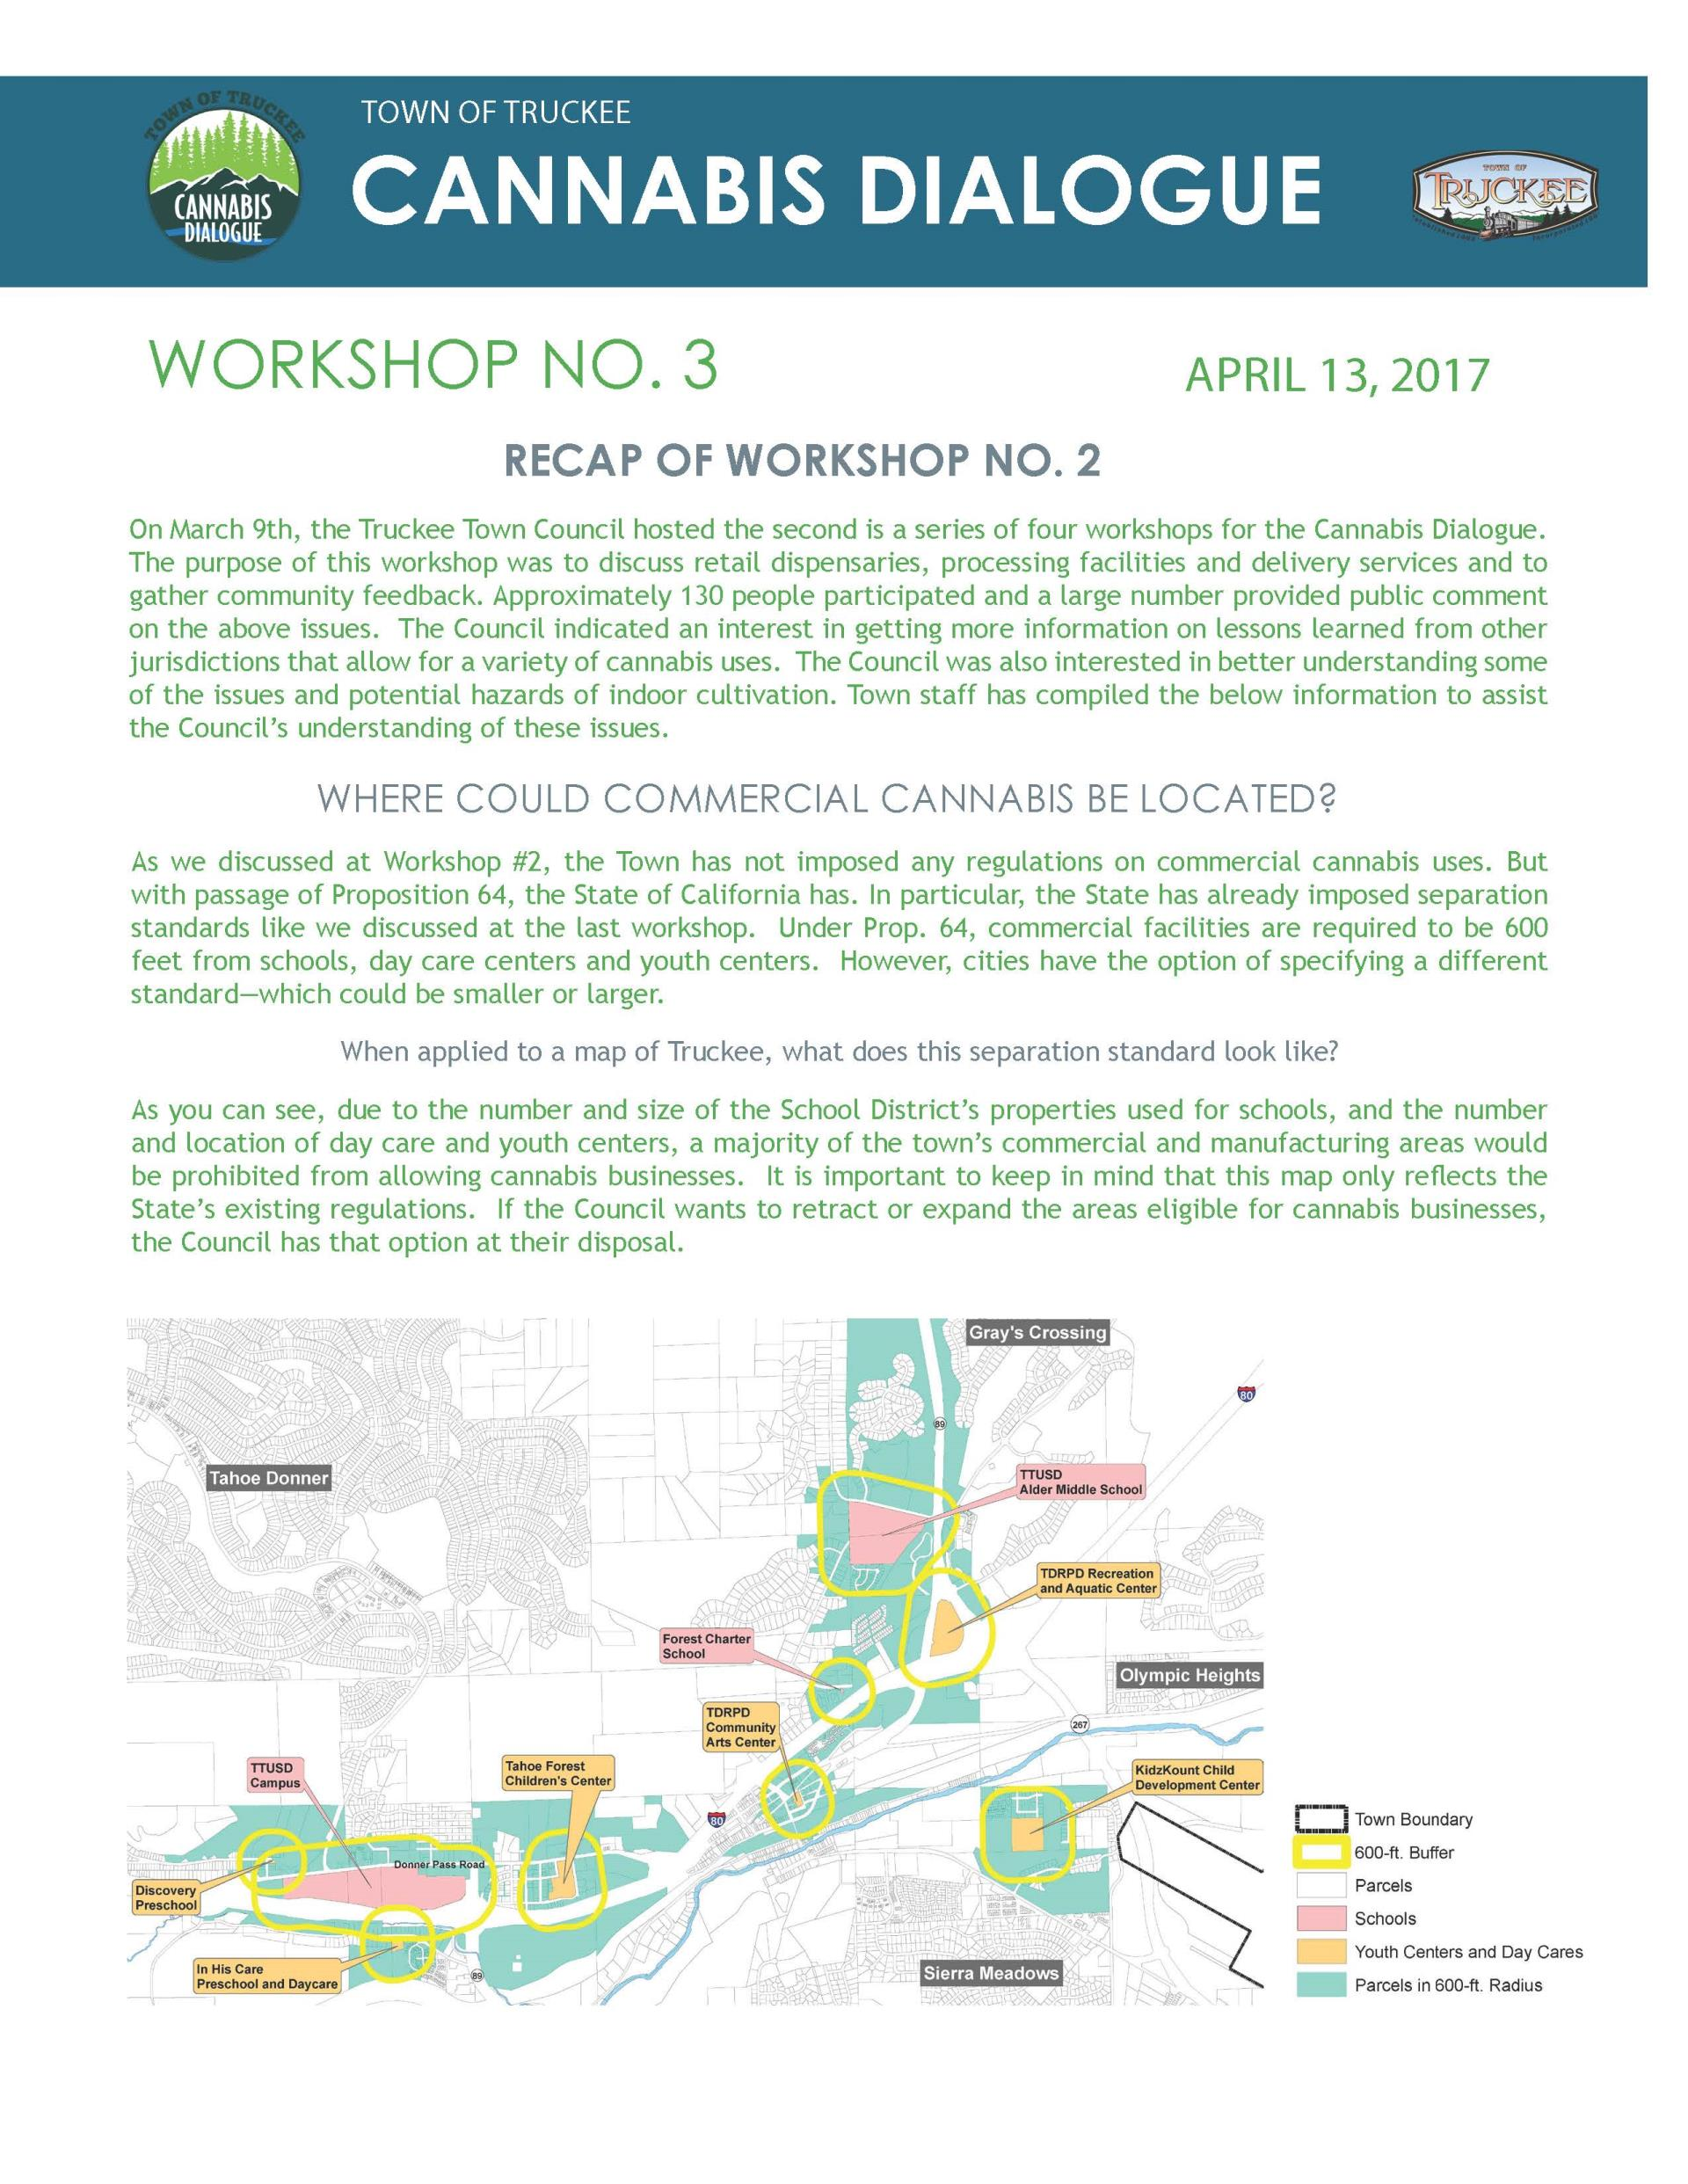 Cannabis Dialogue Workshop 3 Newsletter_Page_1